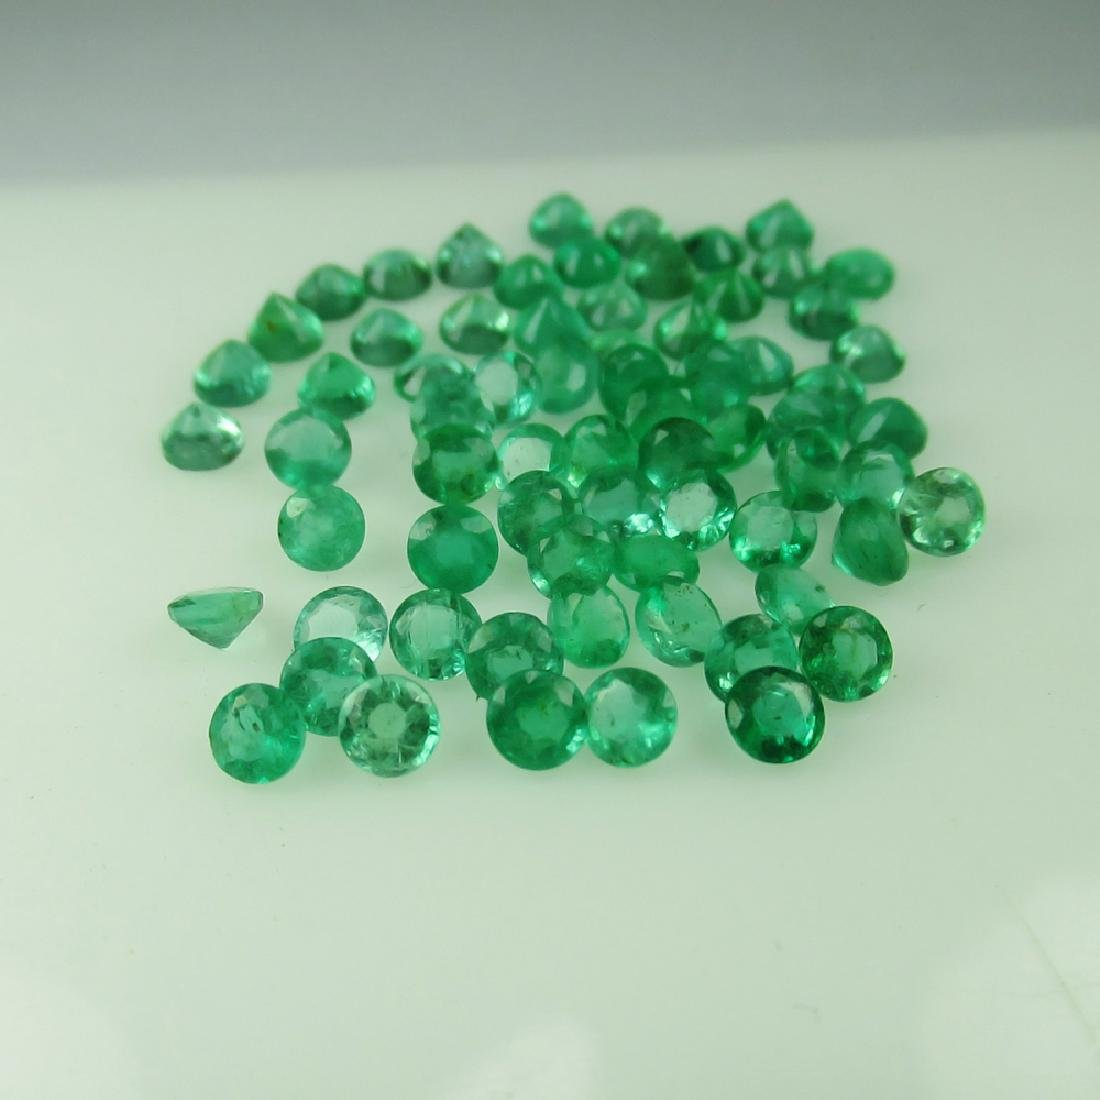 8.26 Carat 69 Loose 3 mm Round Calibrate Emeralds